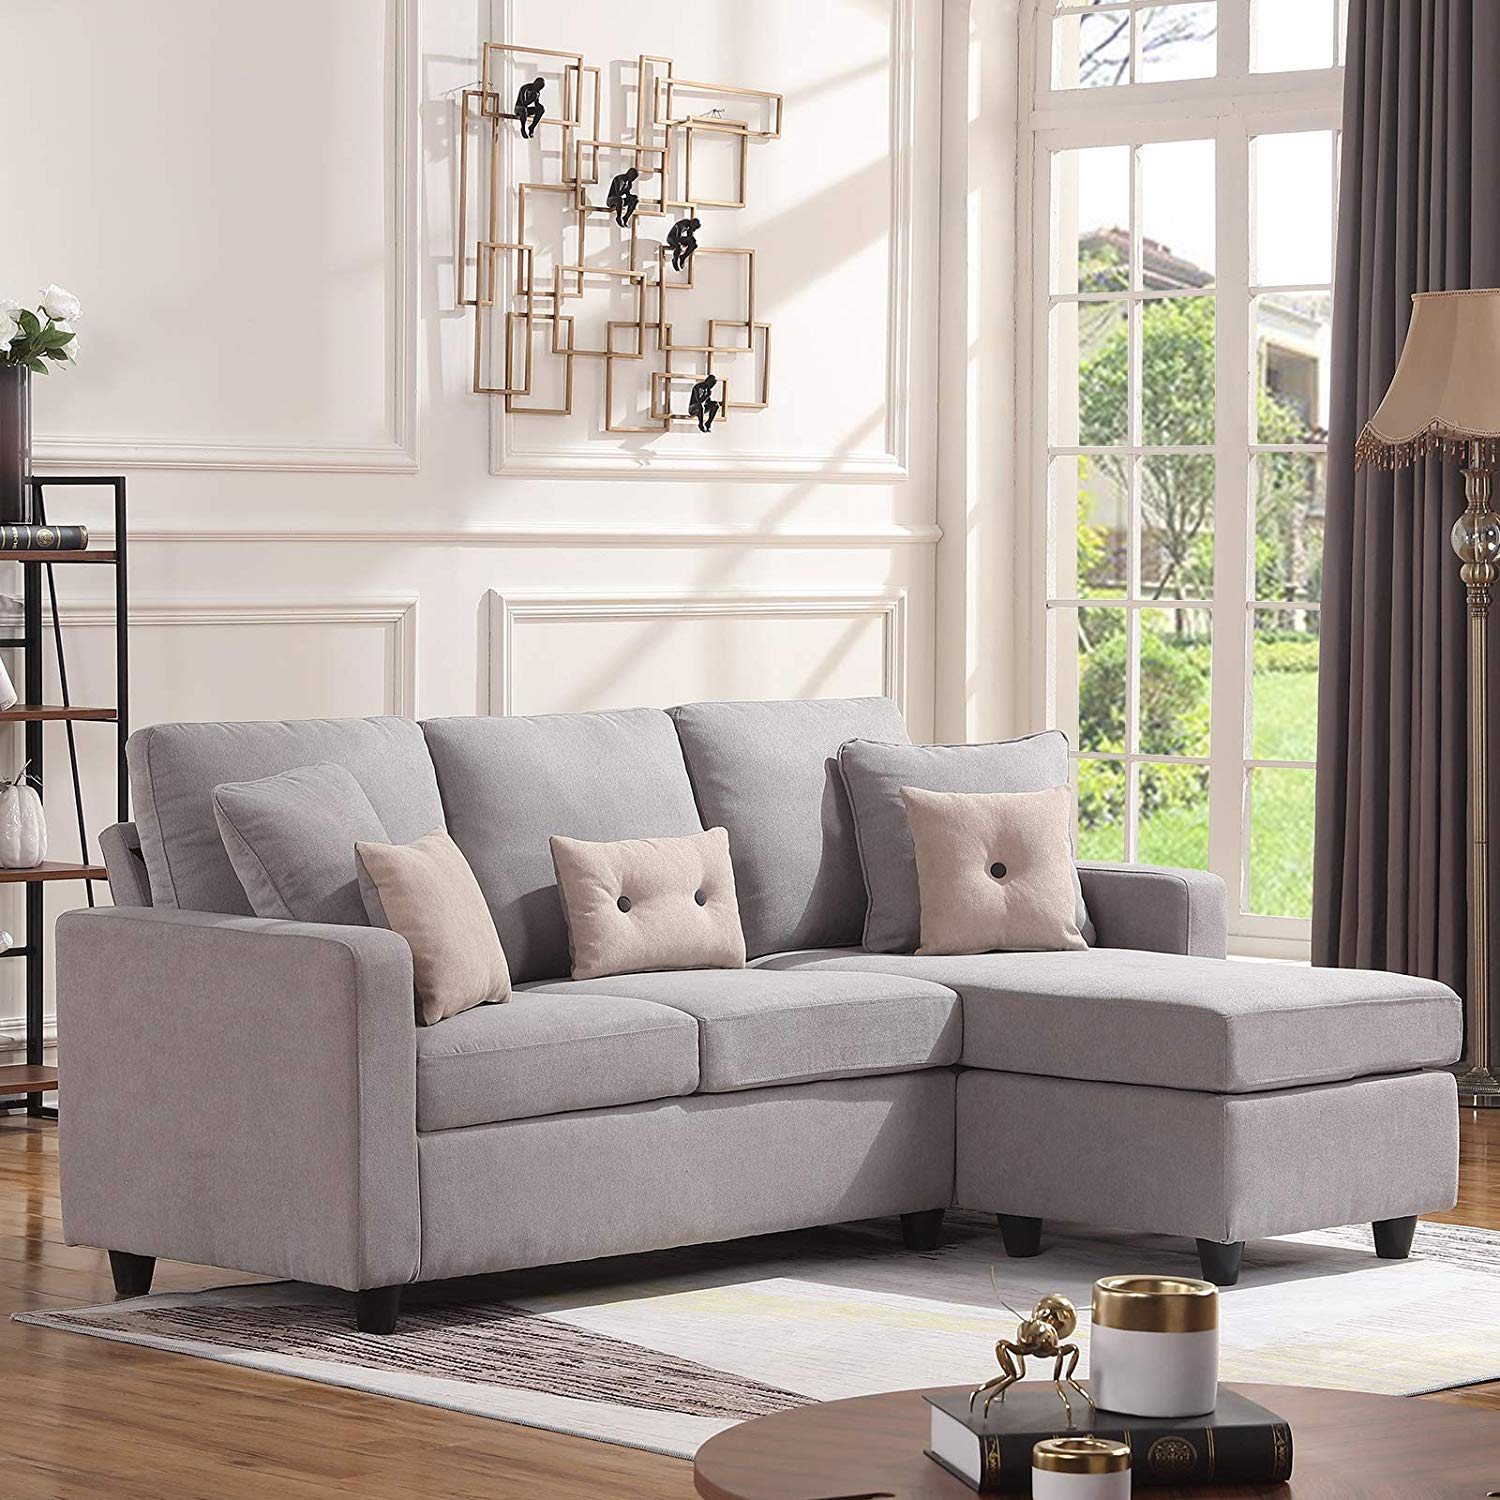 Convertible Sectional Sofa